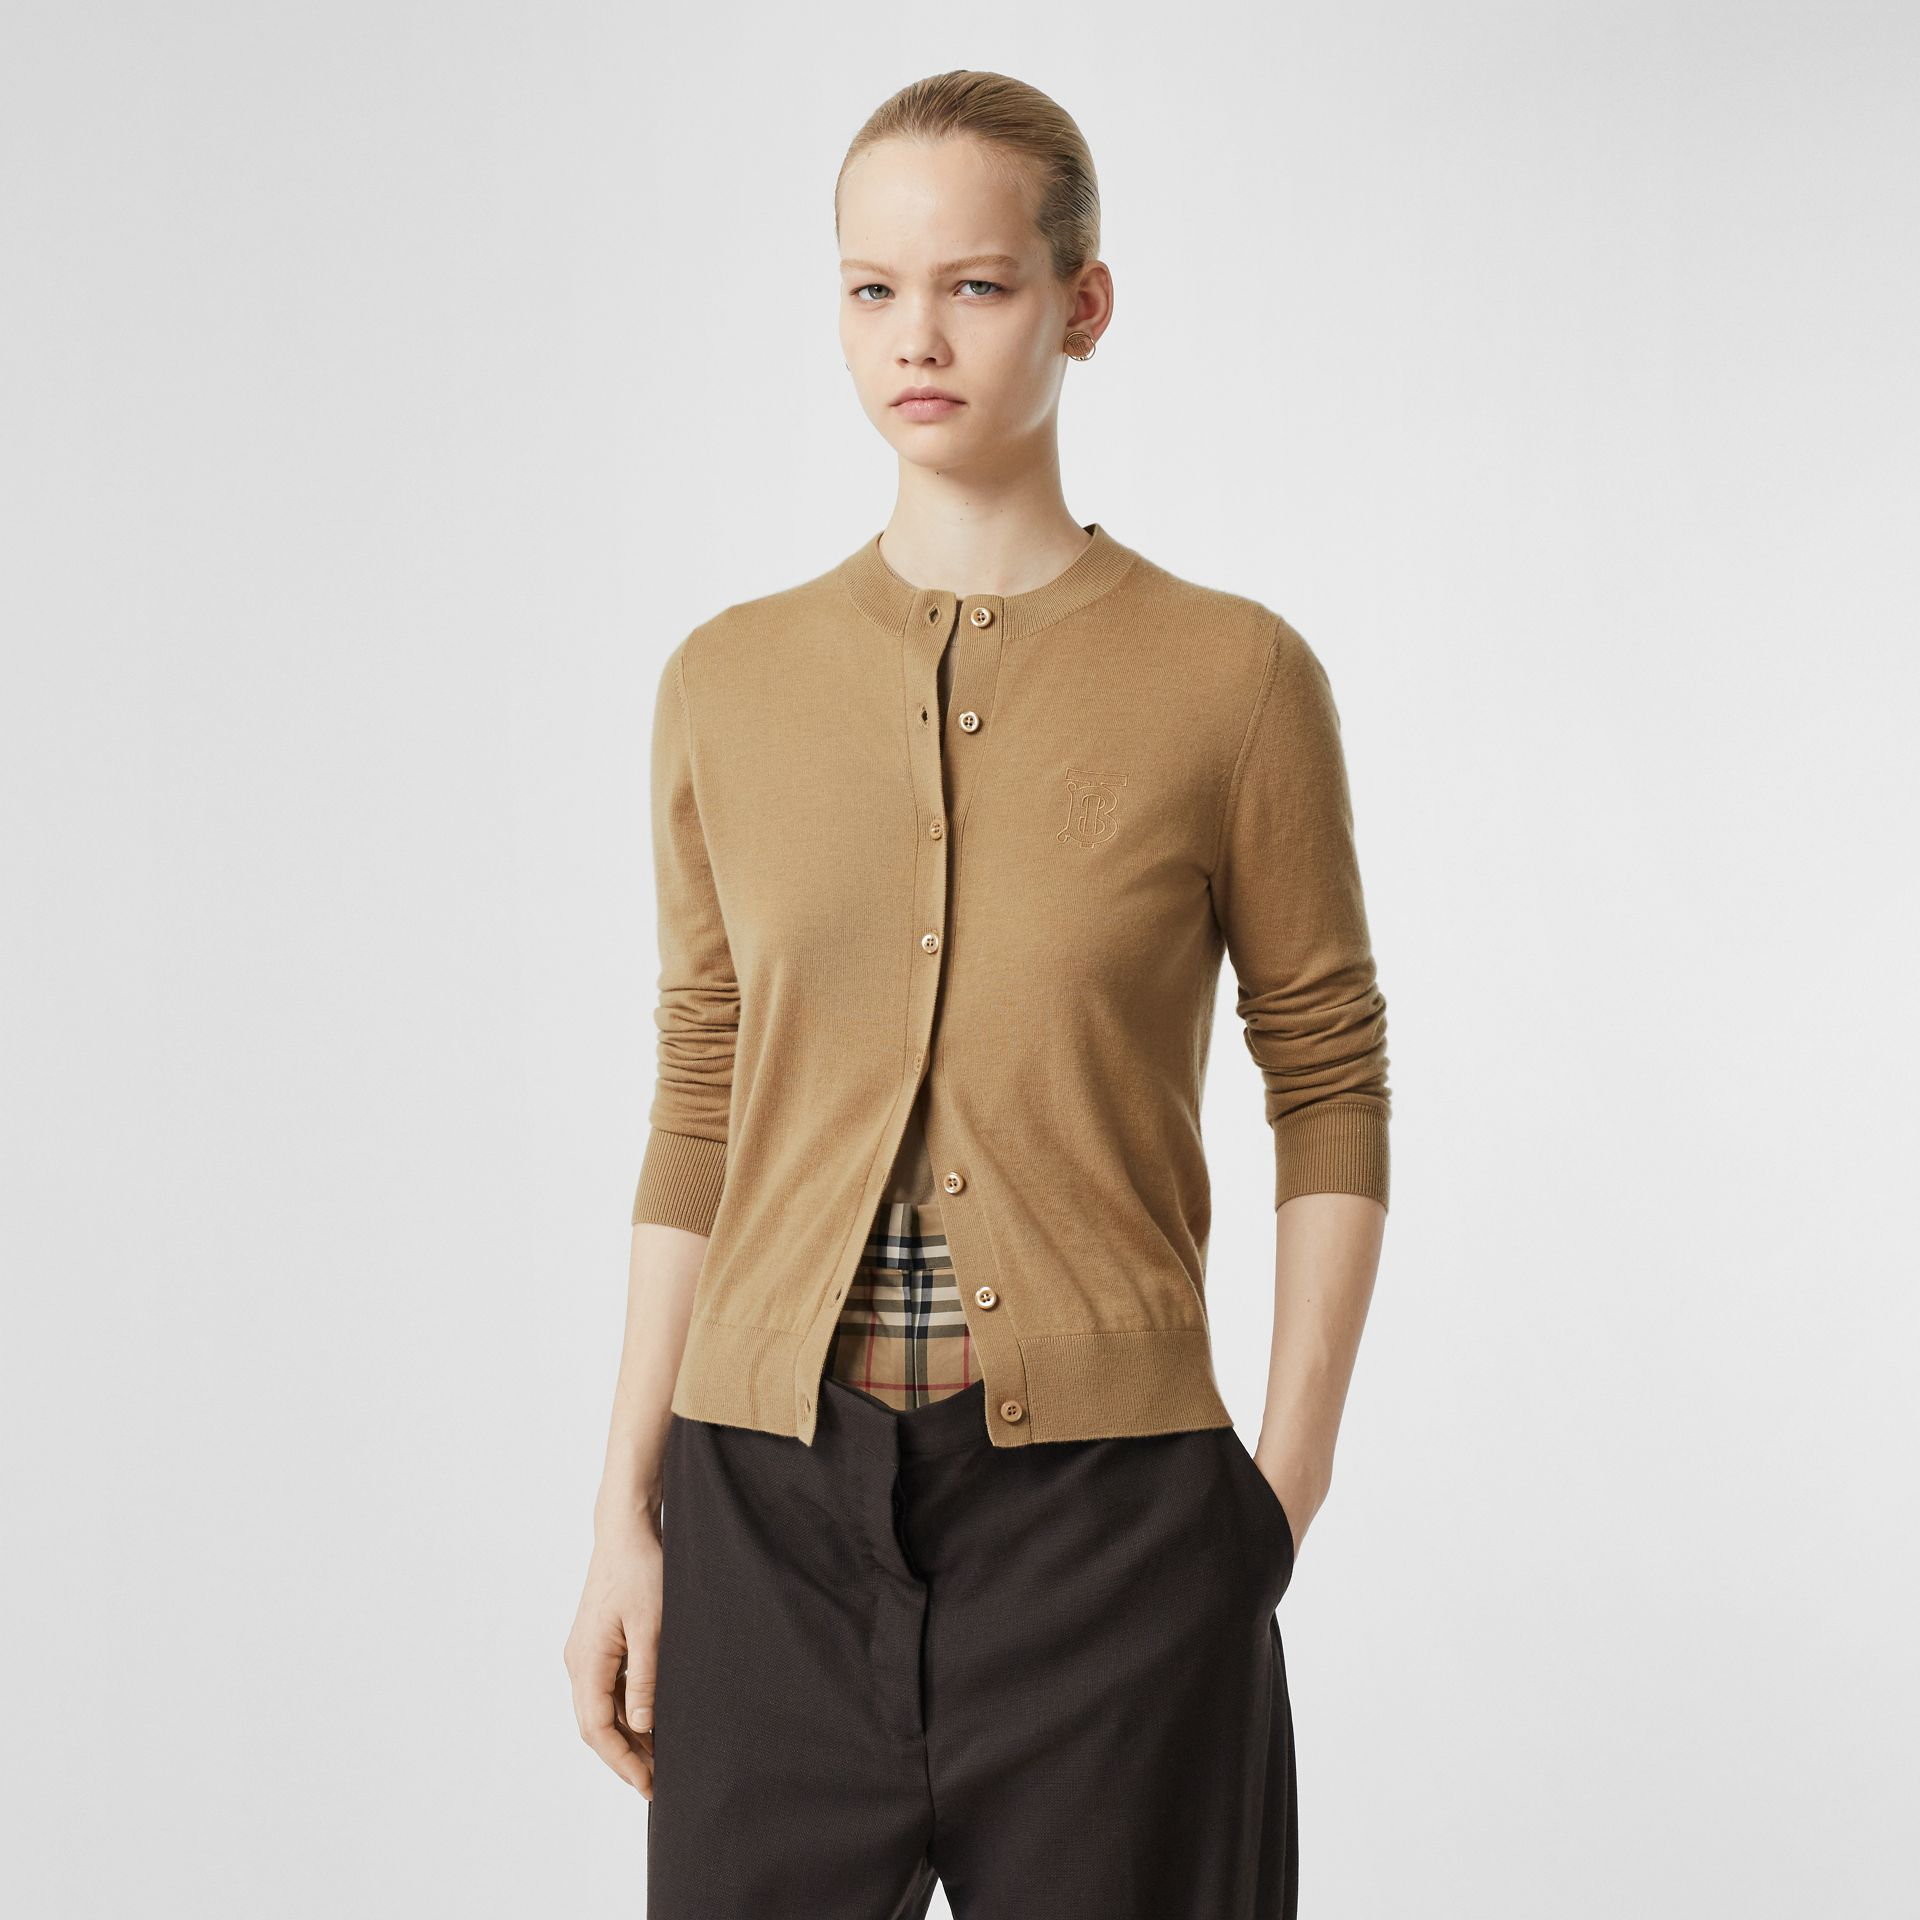 Monogram Motif Cashmere Cardigan in Camel - Women | Burberry United Kingdom - gallery image 4